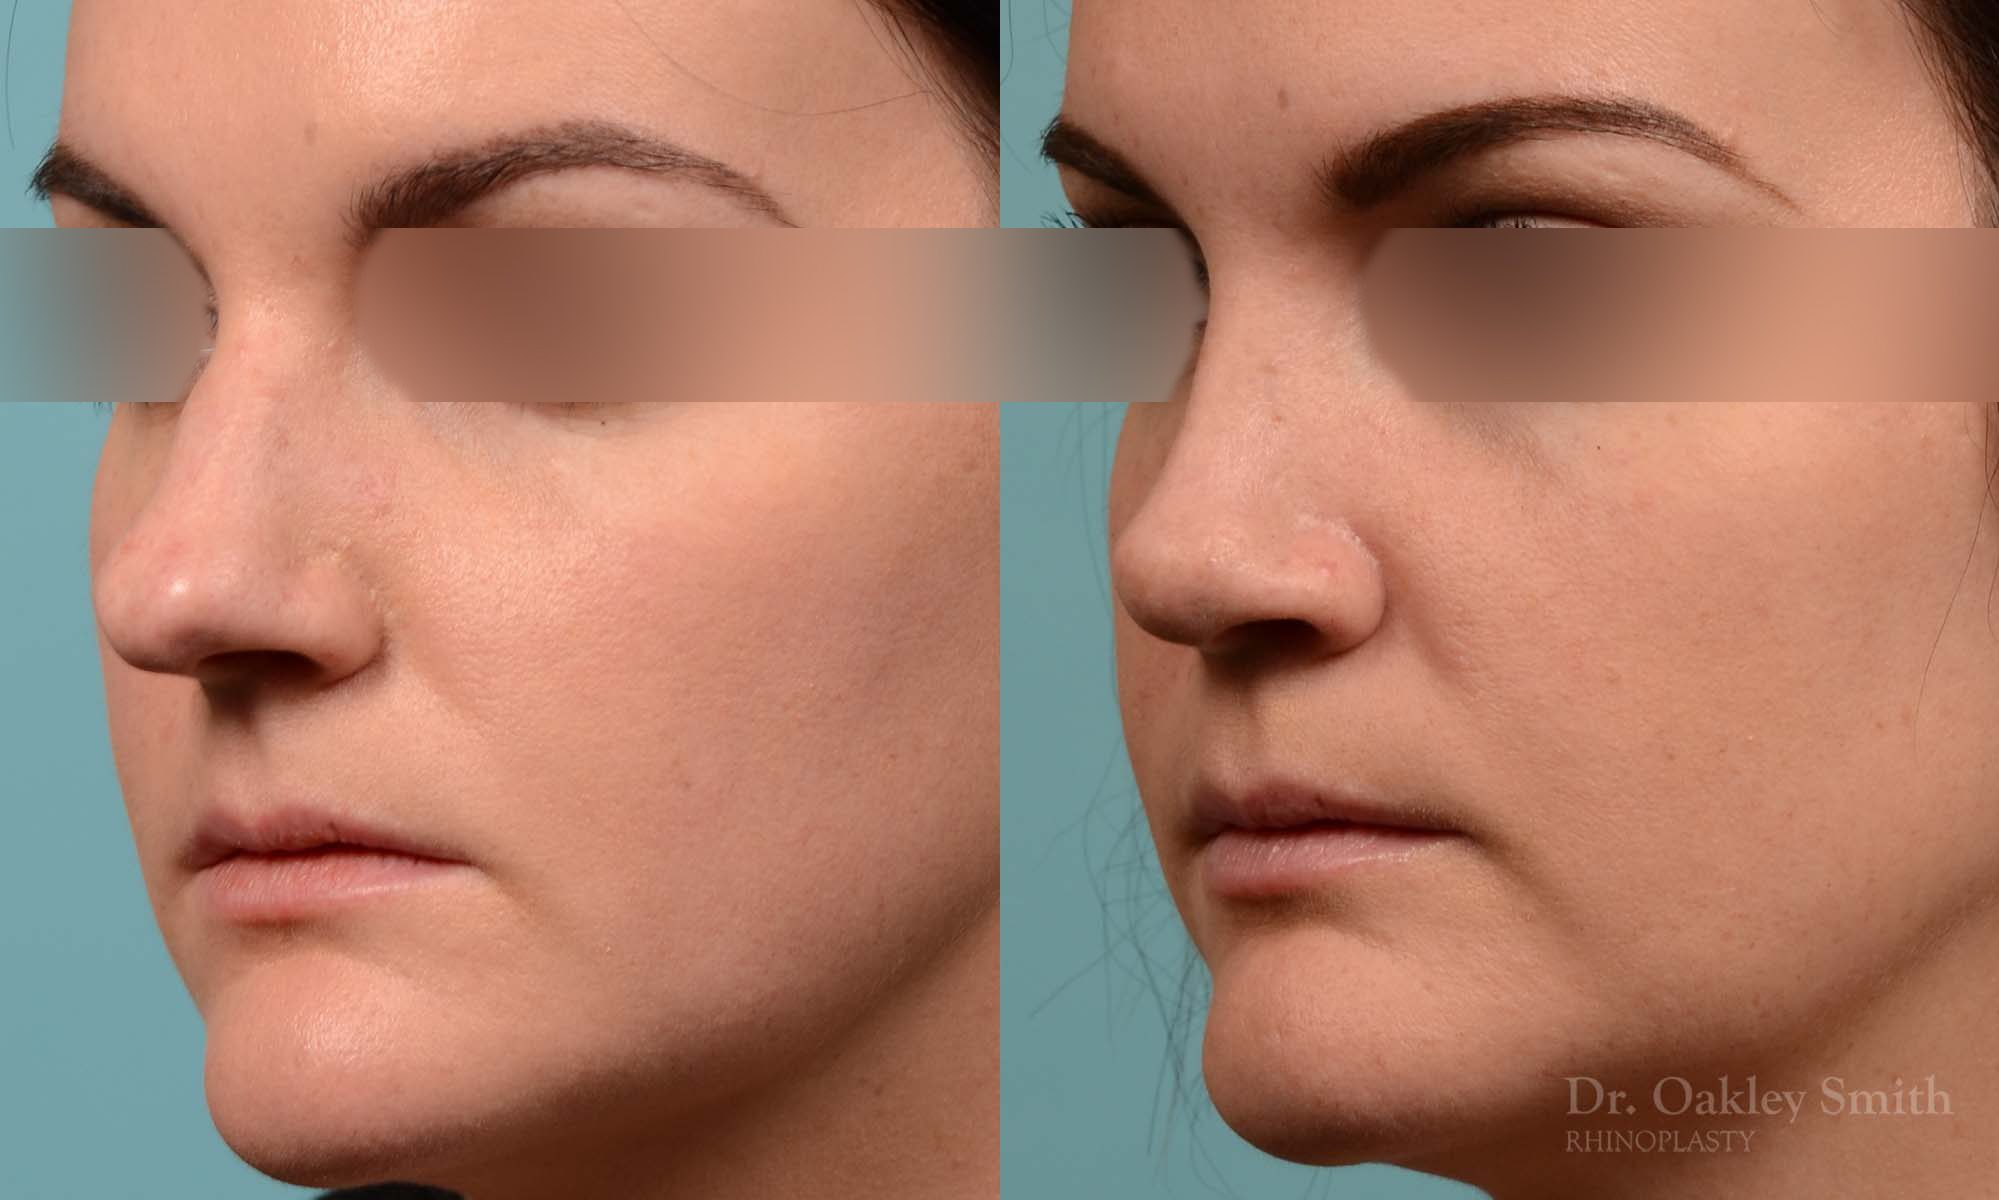 Hump Reduction, Rhinoplasty - Rhinoplasty Before and After Case 252